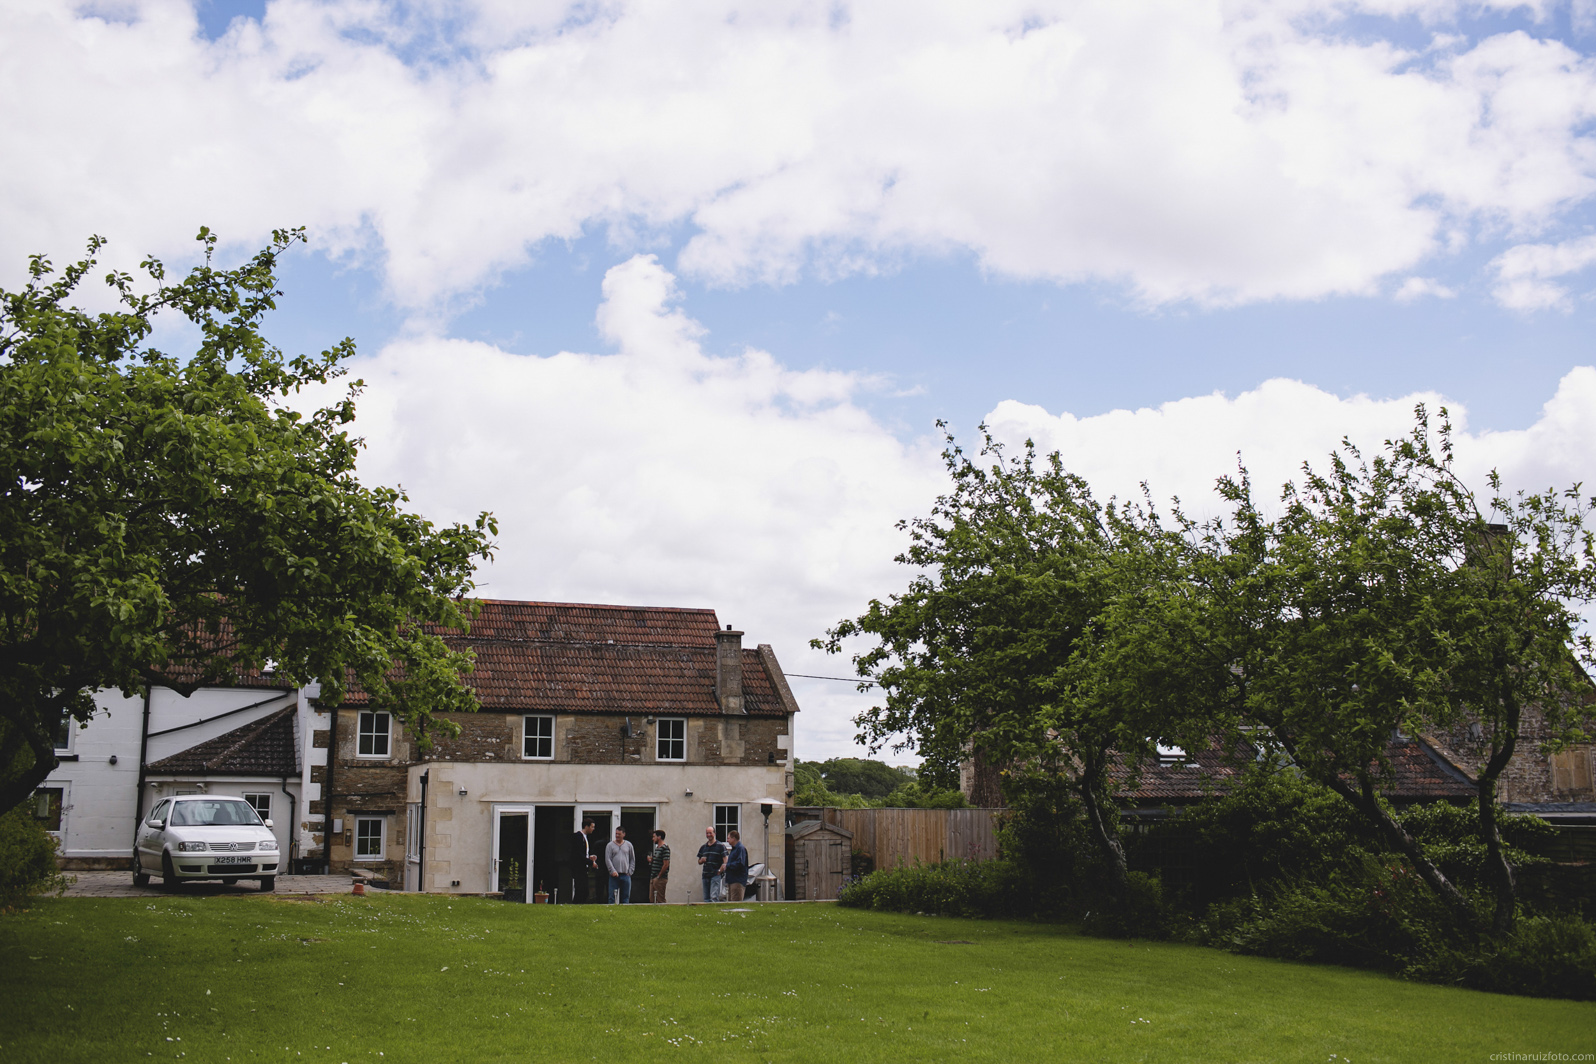 Wedding in Bath, wedding in wick farm bath, cristina ruiz foto, fotografos boda inglaterra